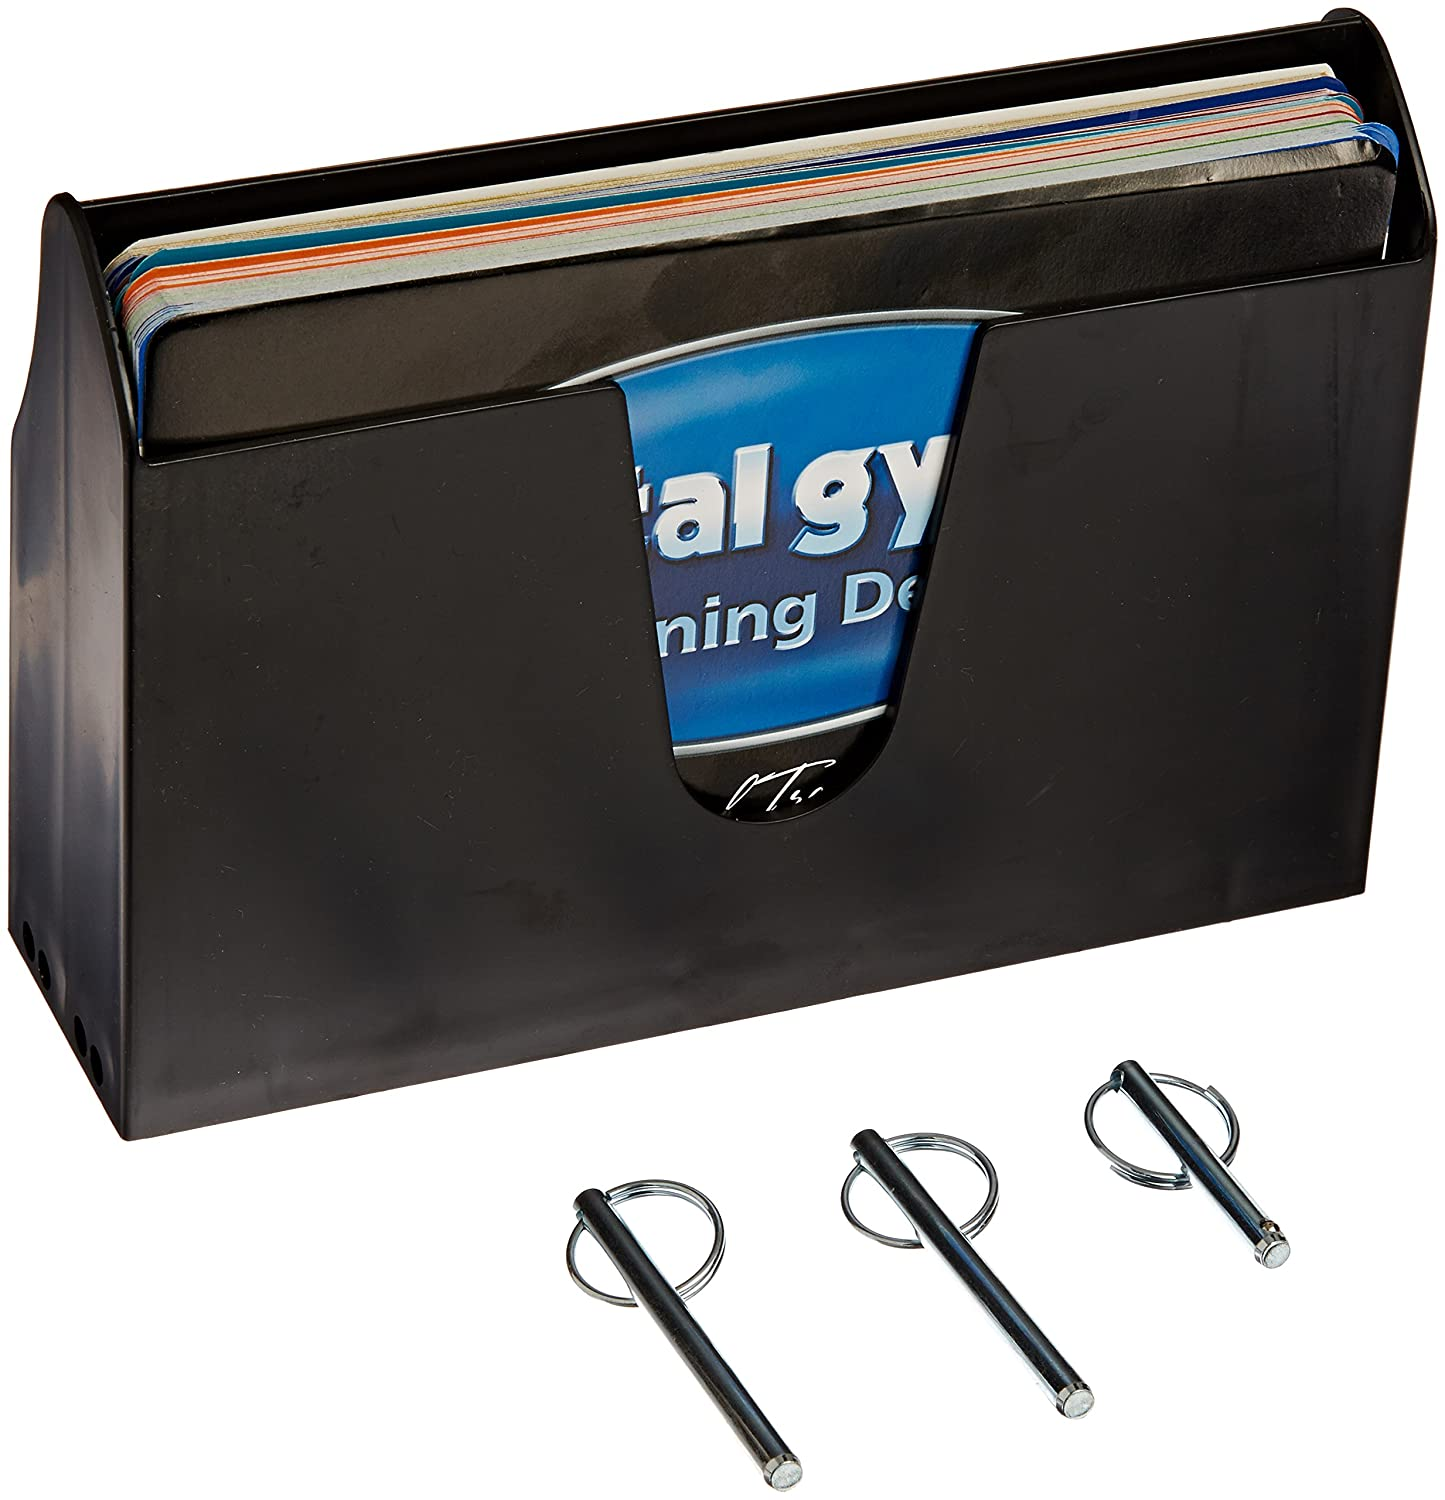 total gym training deck with card holder sports